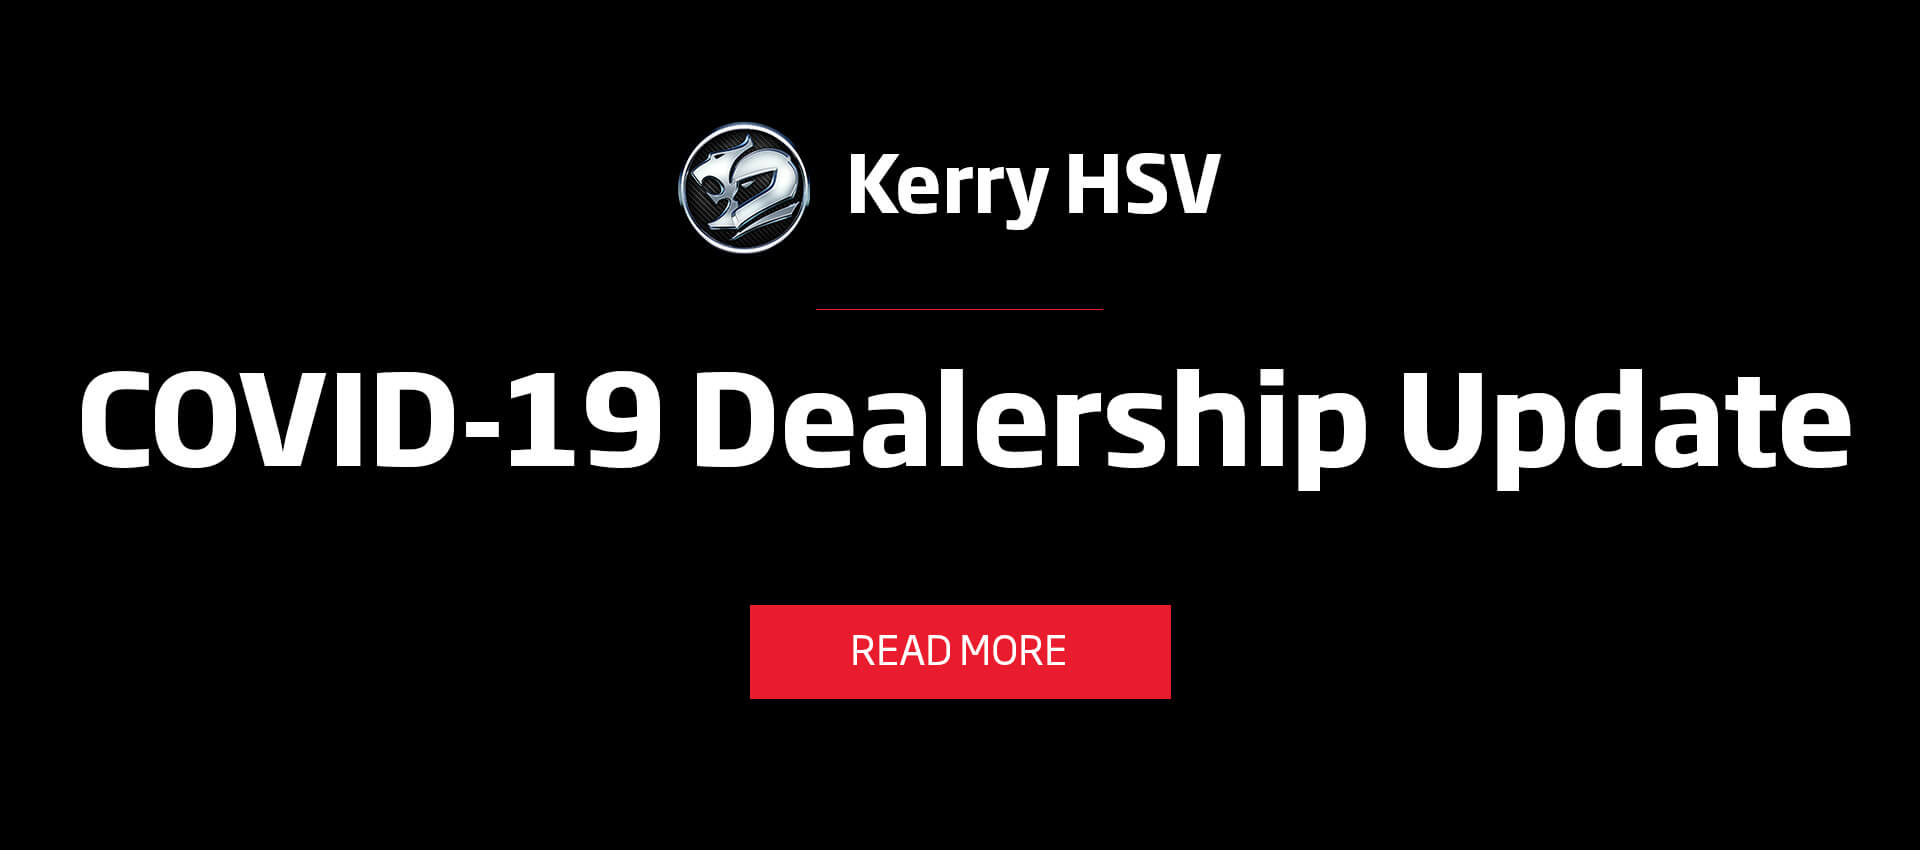 Kerry HSV COVID19 Statement